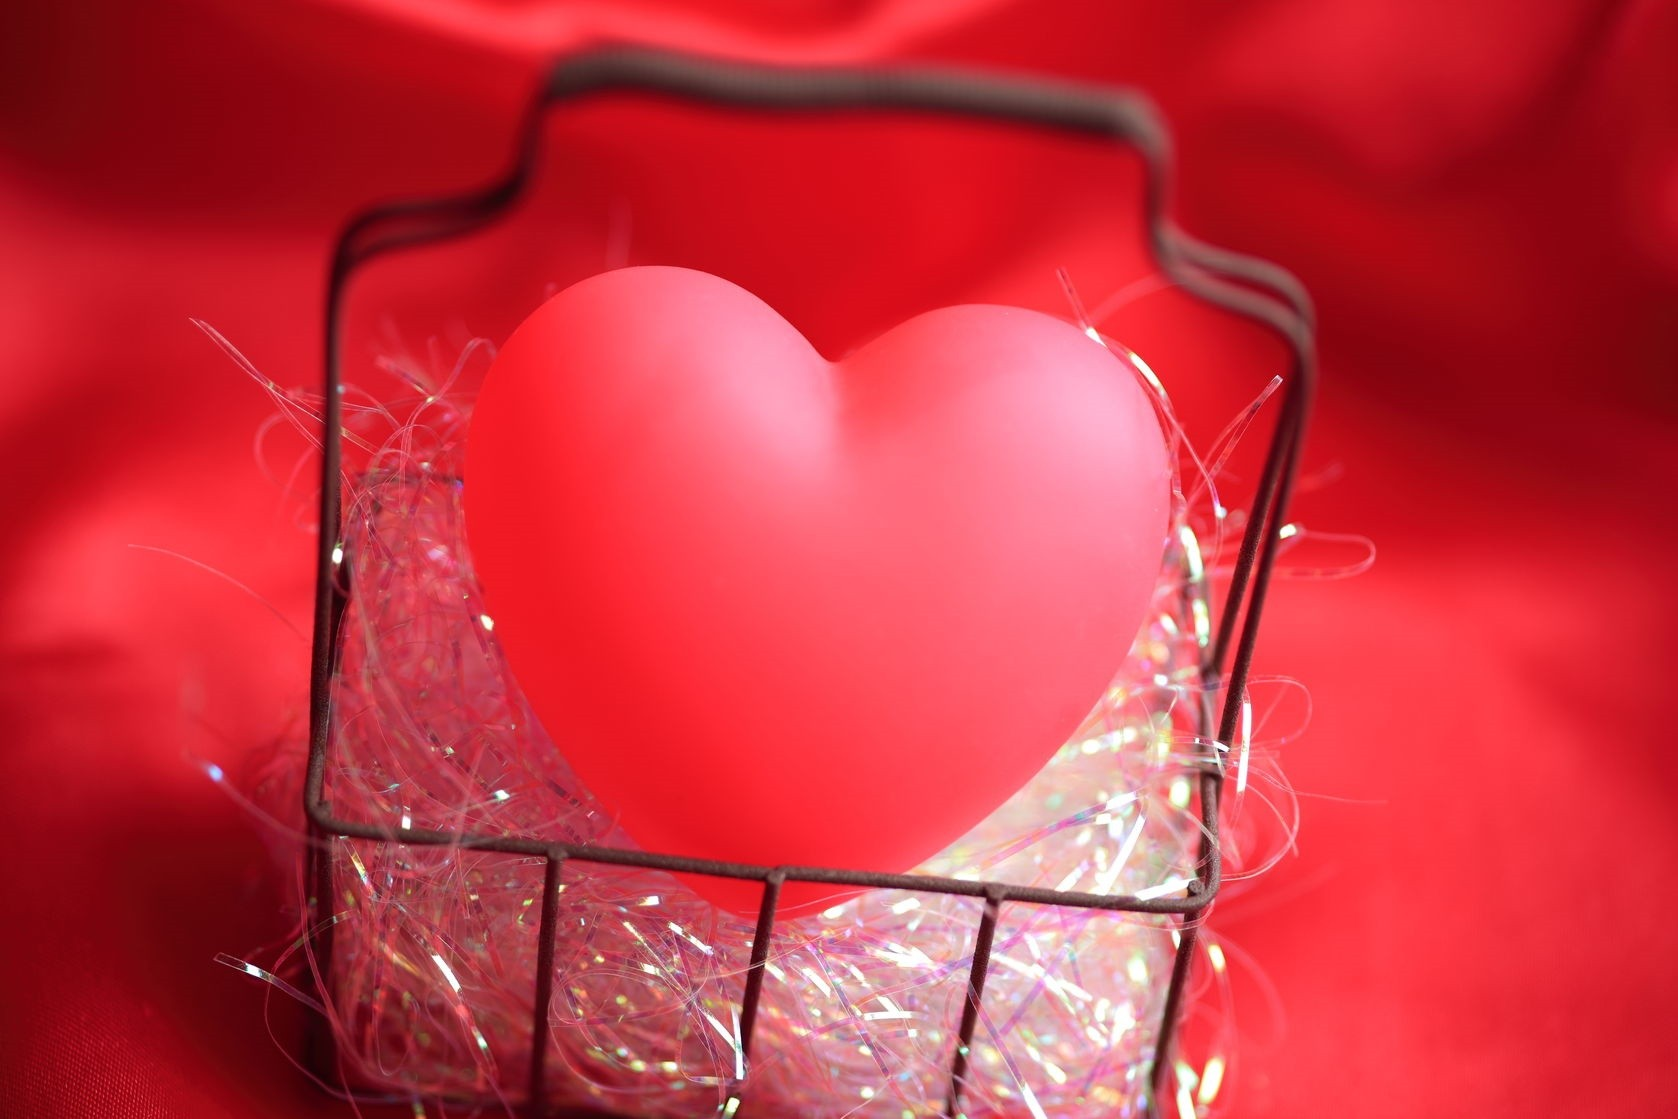 sweetie love heart in a basket